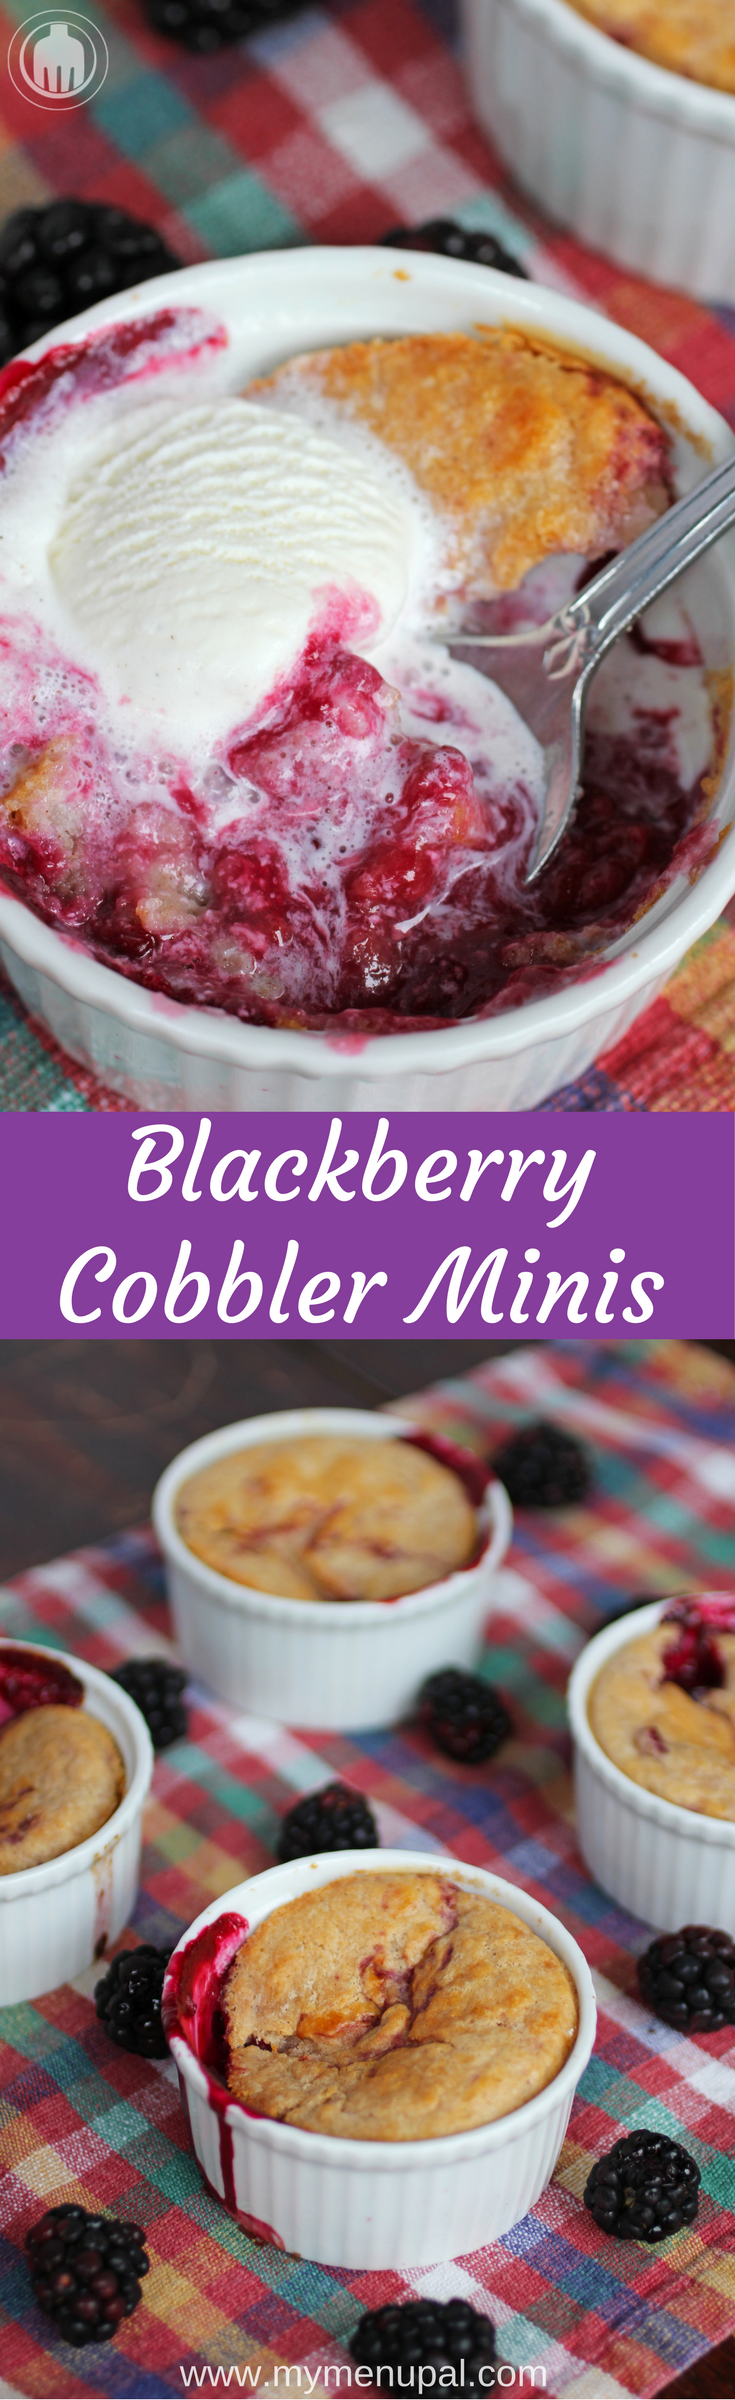 Blackberry Cobbler Minis are the perfect easy summer dessert using fresh berries at their peak so added sugar is kept to a minimum